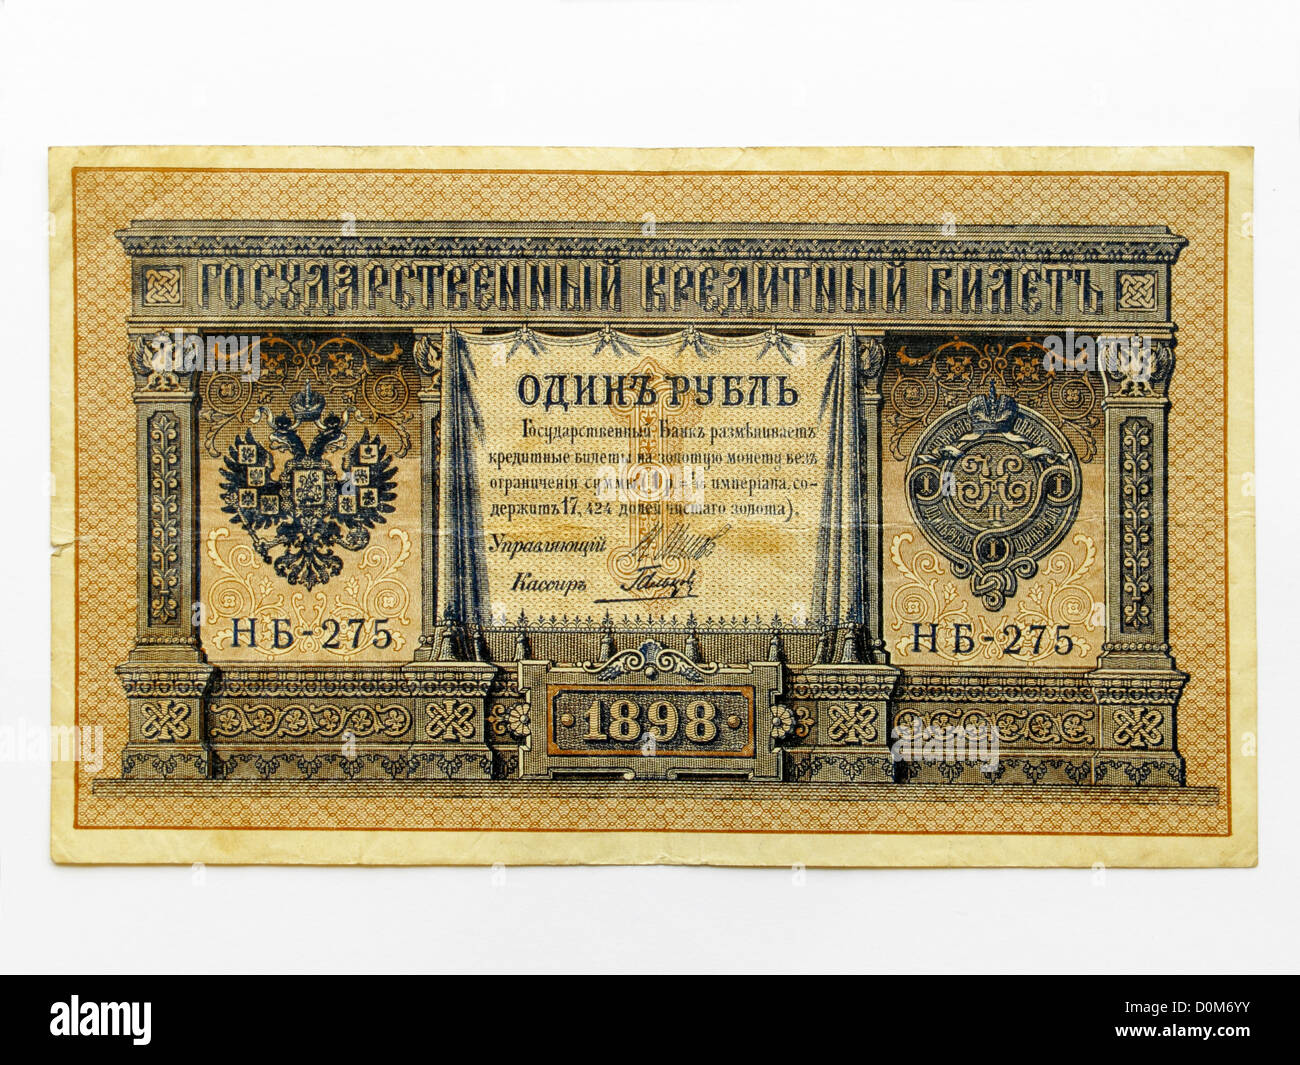 One Rouble Ruble Imperialist Russian banknote 1898 issue Stock Photo